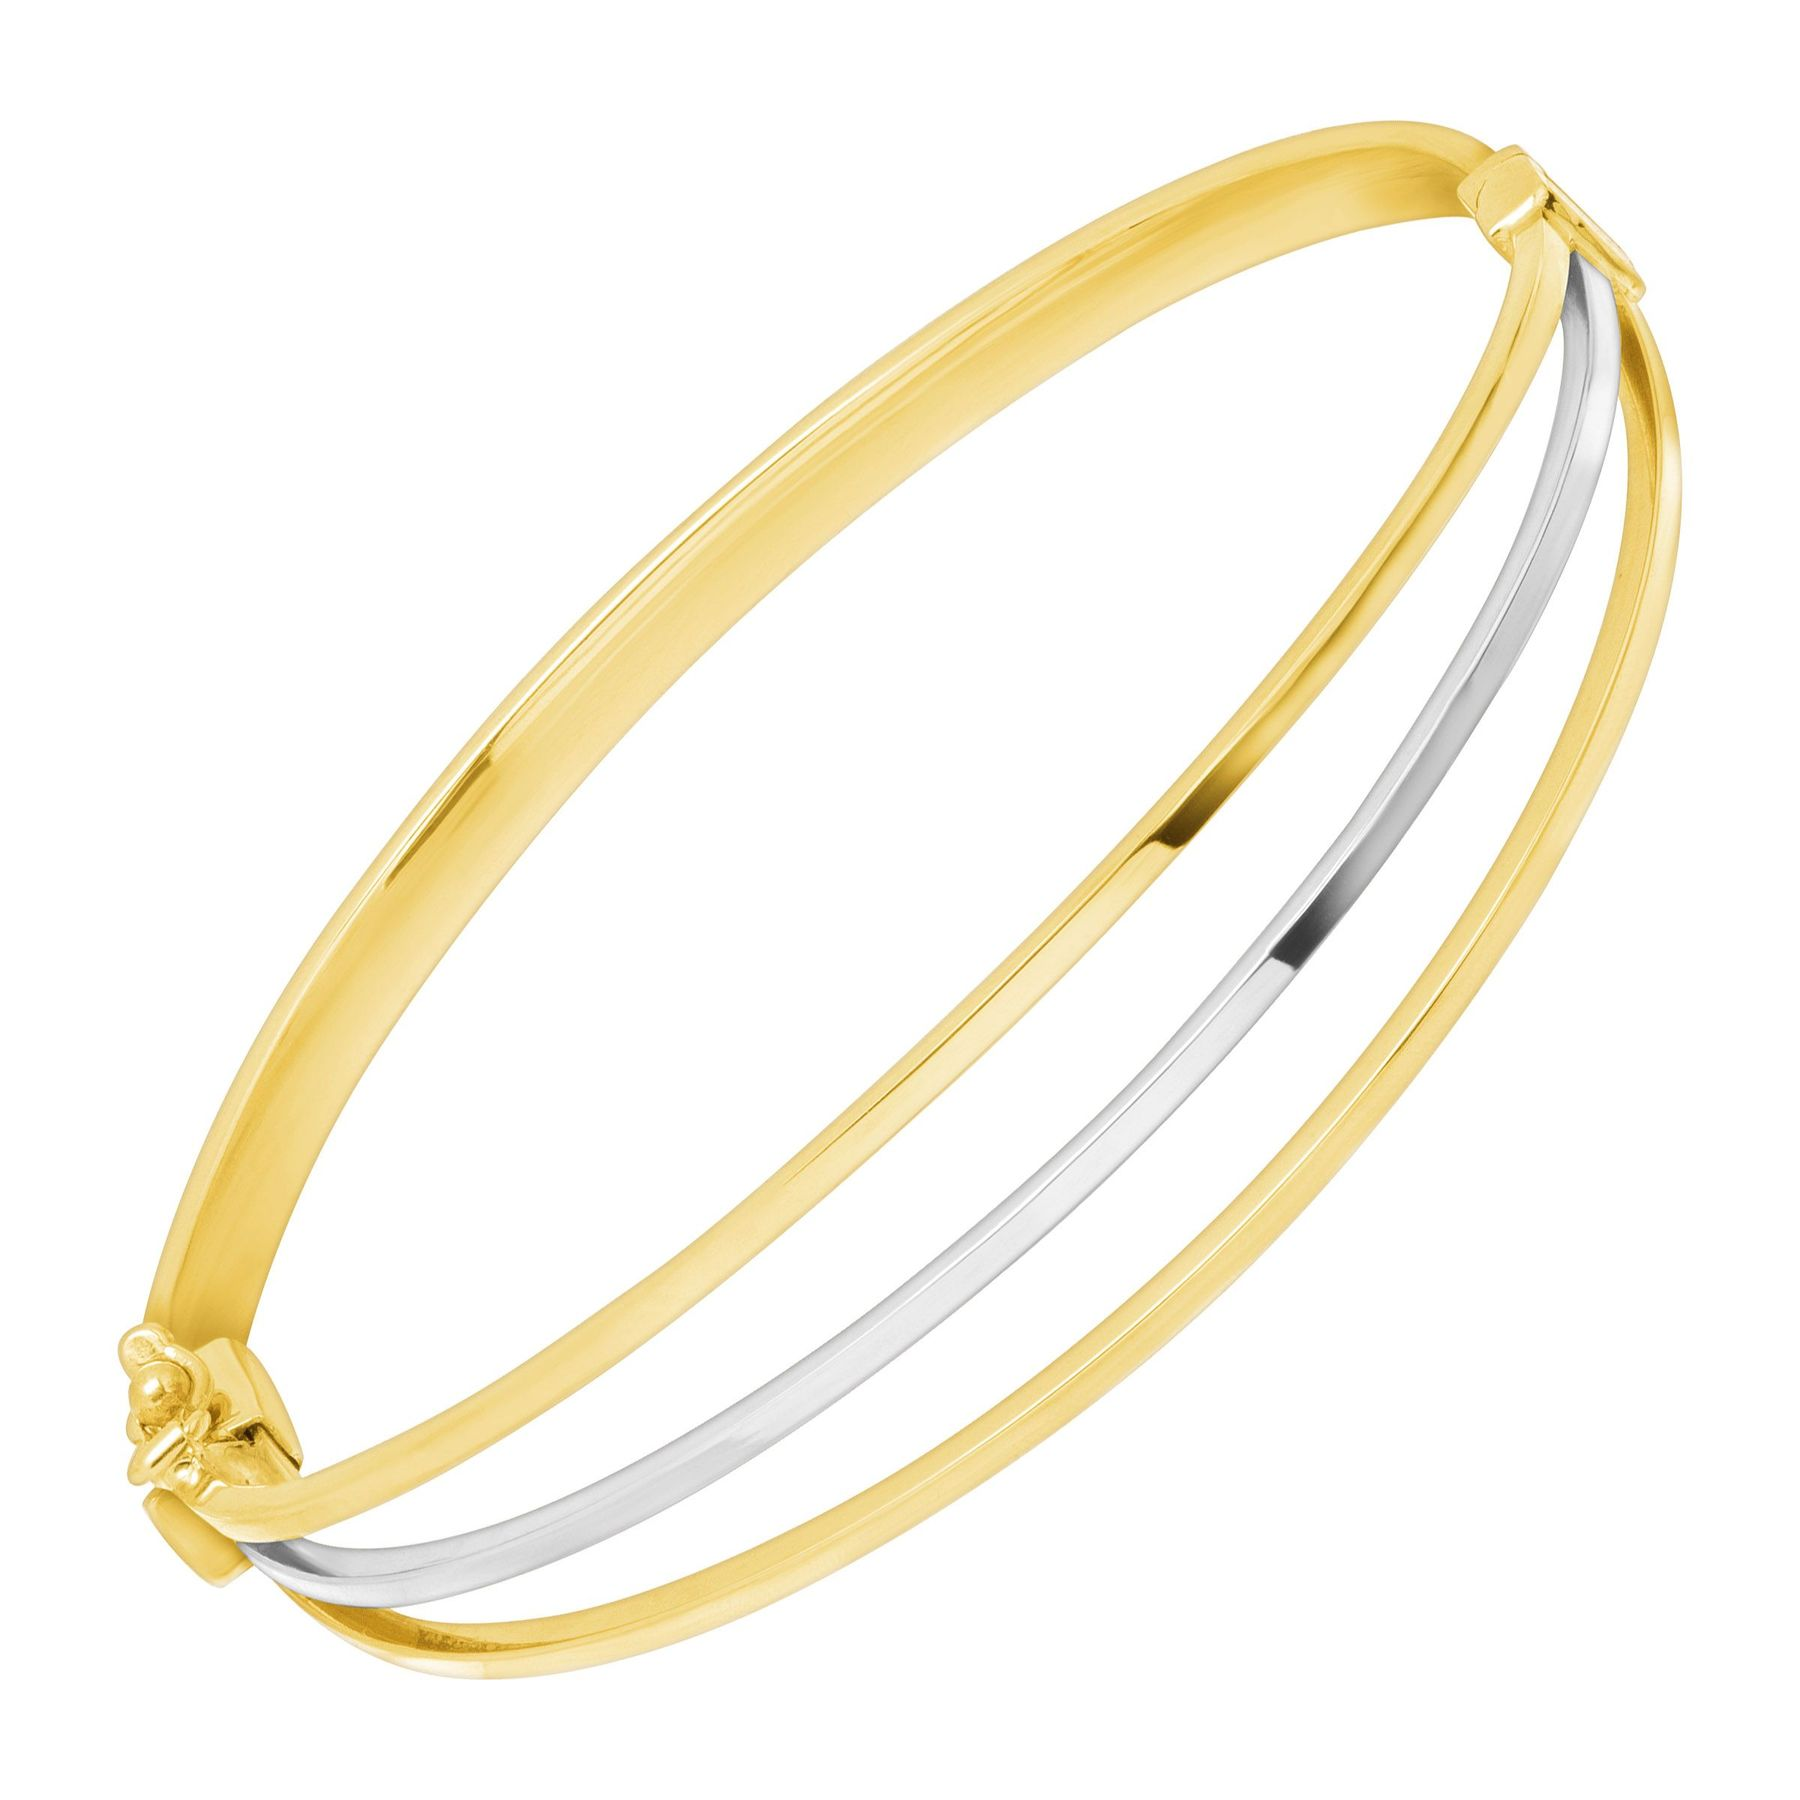 bamboo bracelet thin gucci gold bangle bangles popular